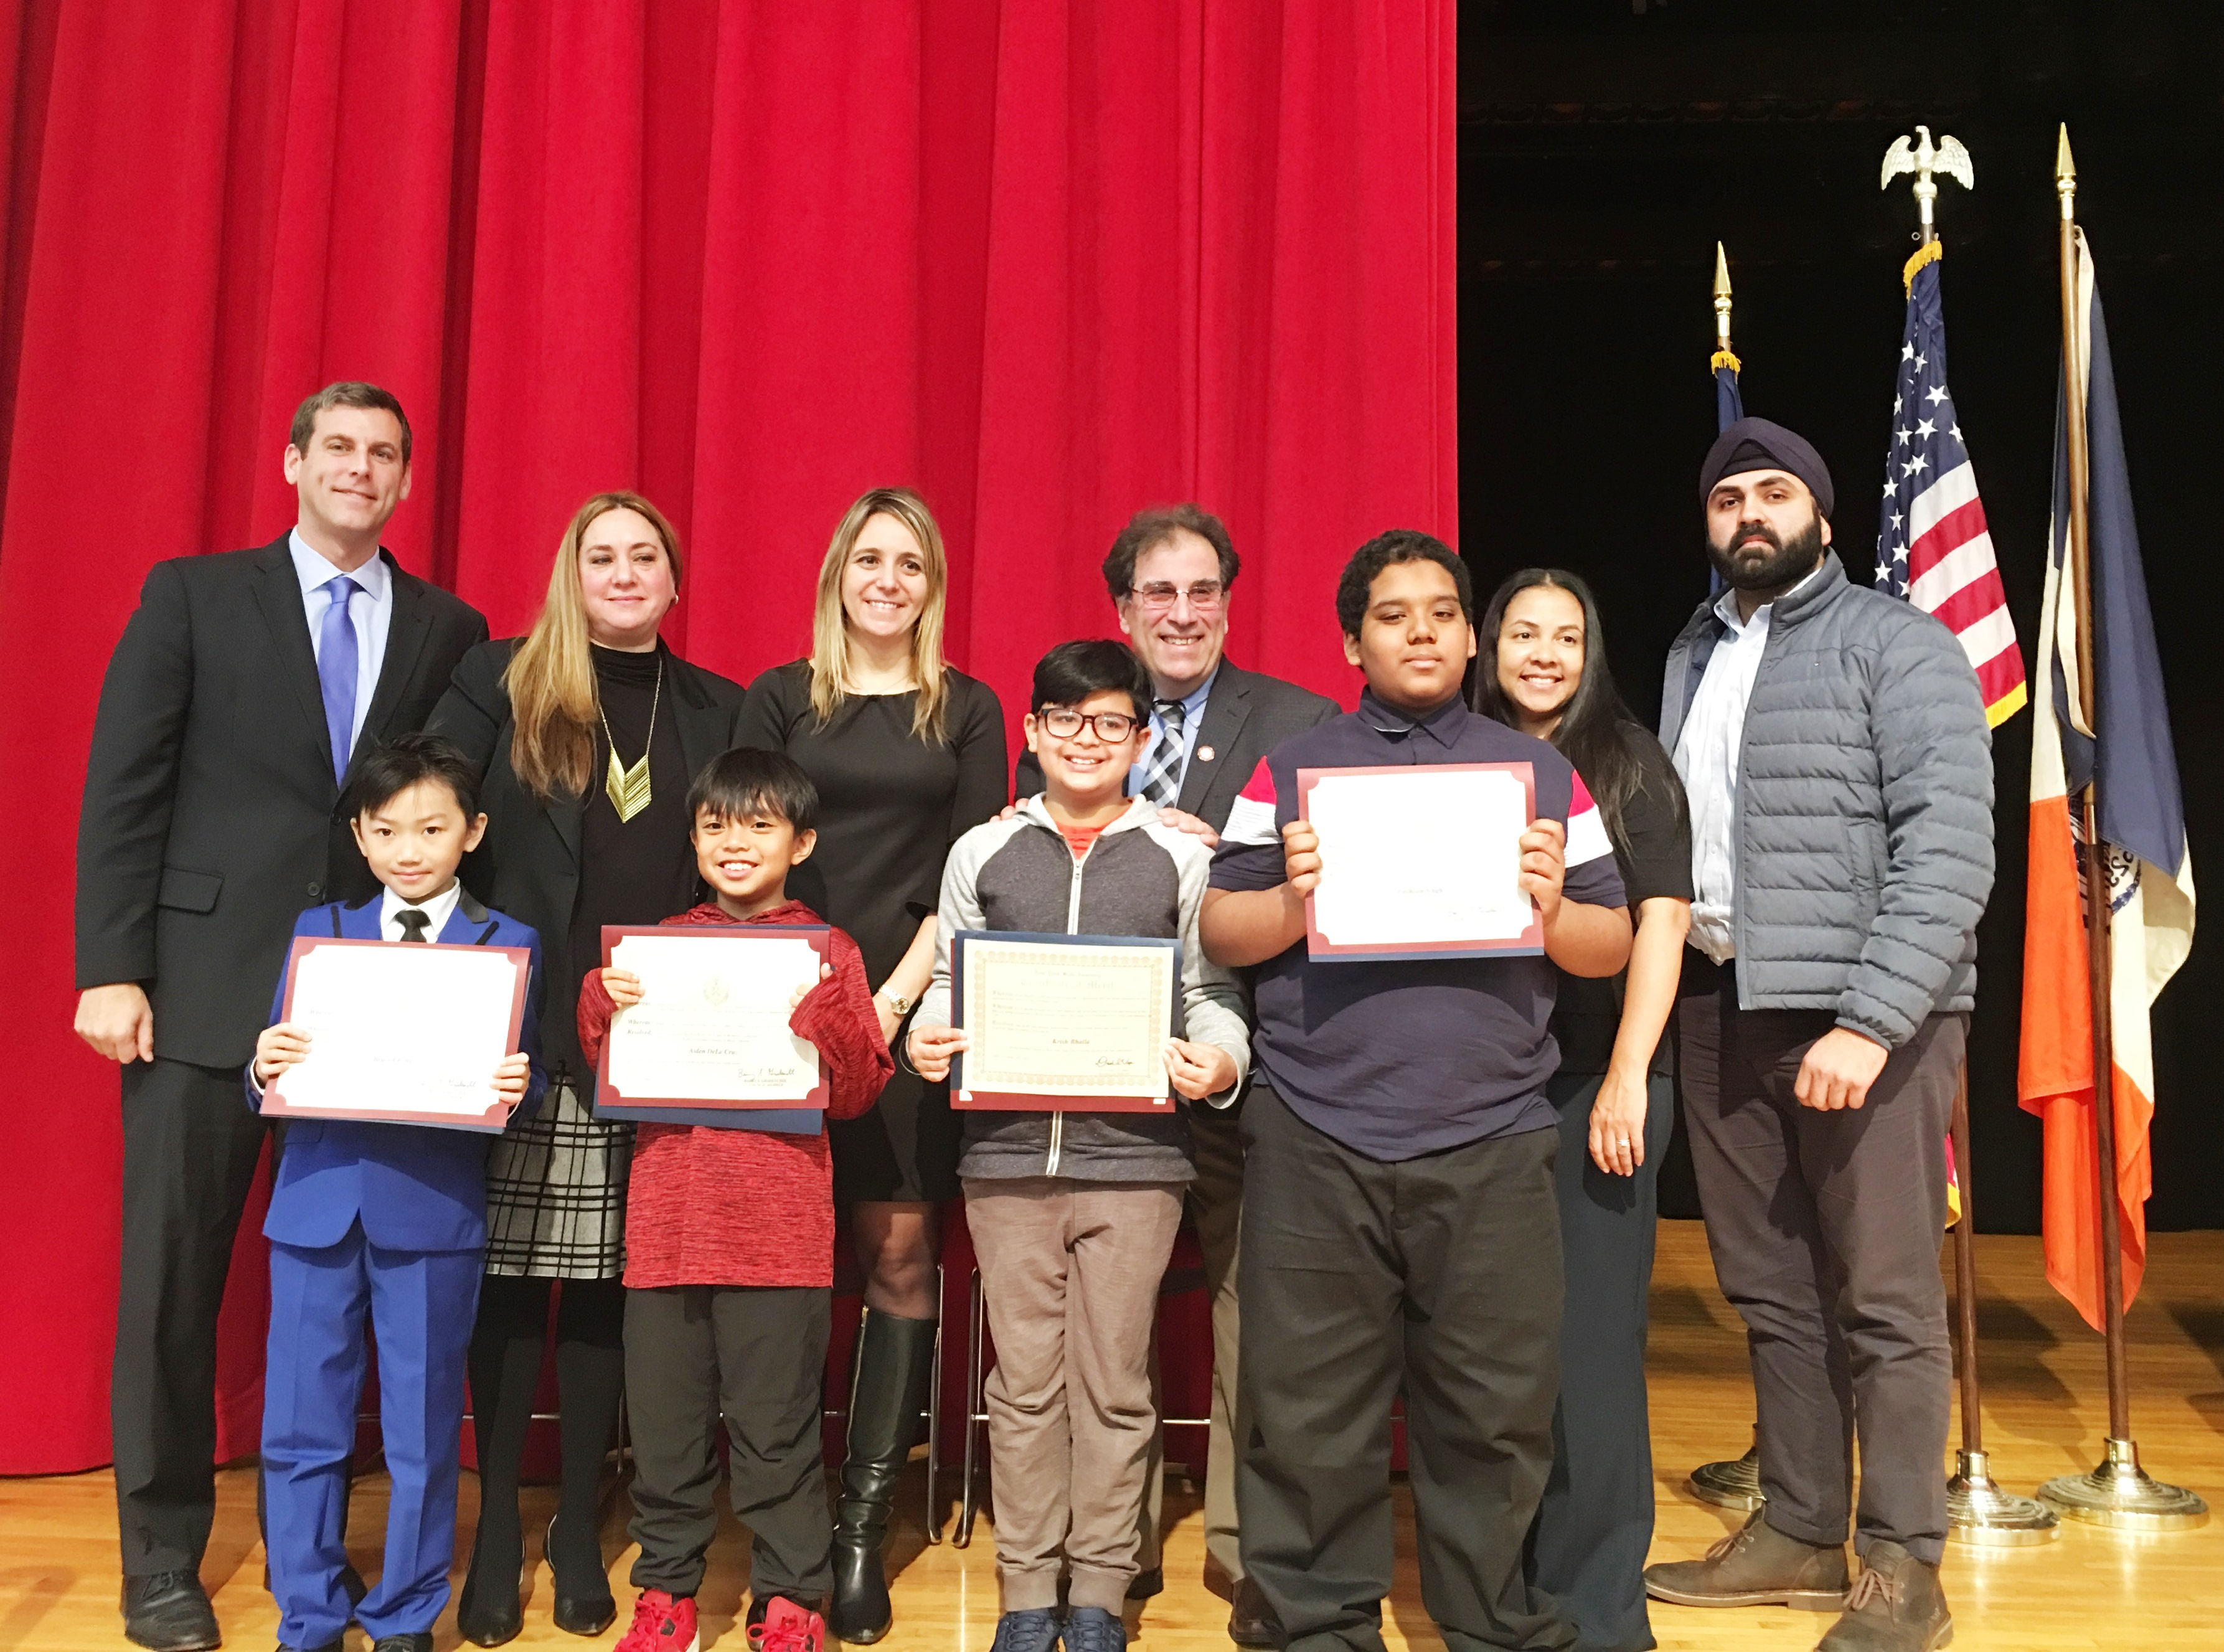 On November 14, 2018, Assemblyman Braunstein attended PS 115's Student Council Installation Ceremony in Floral Park